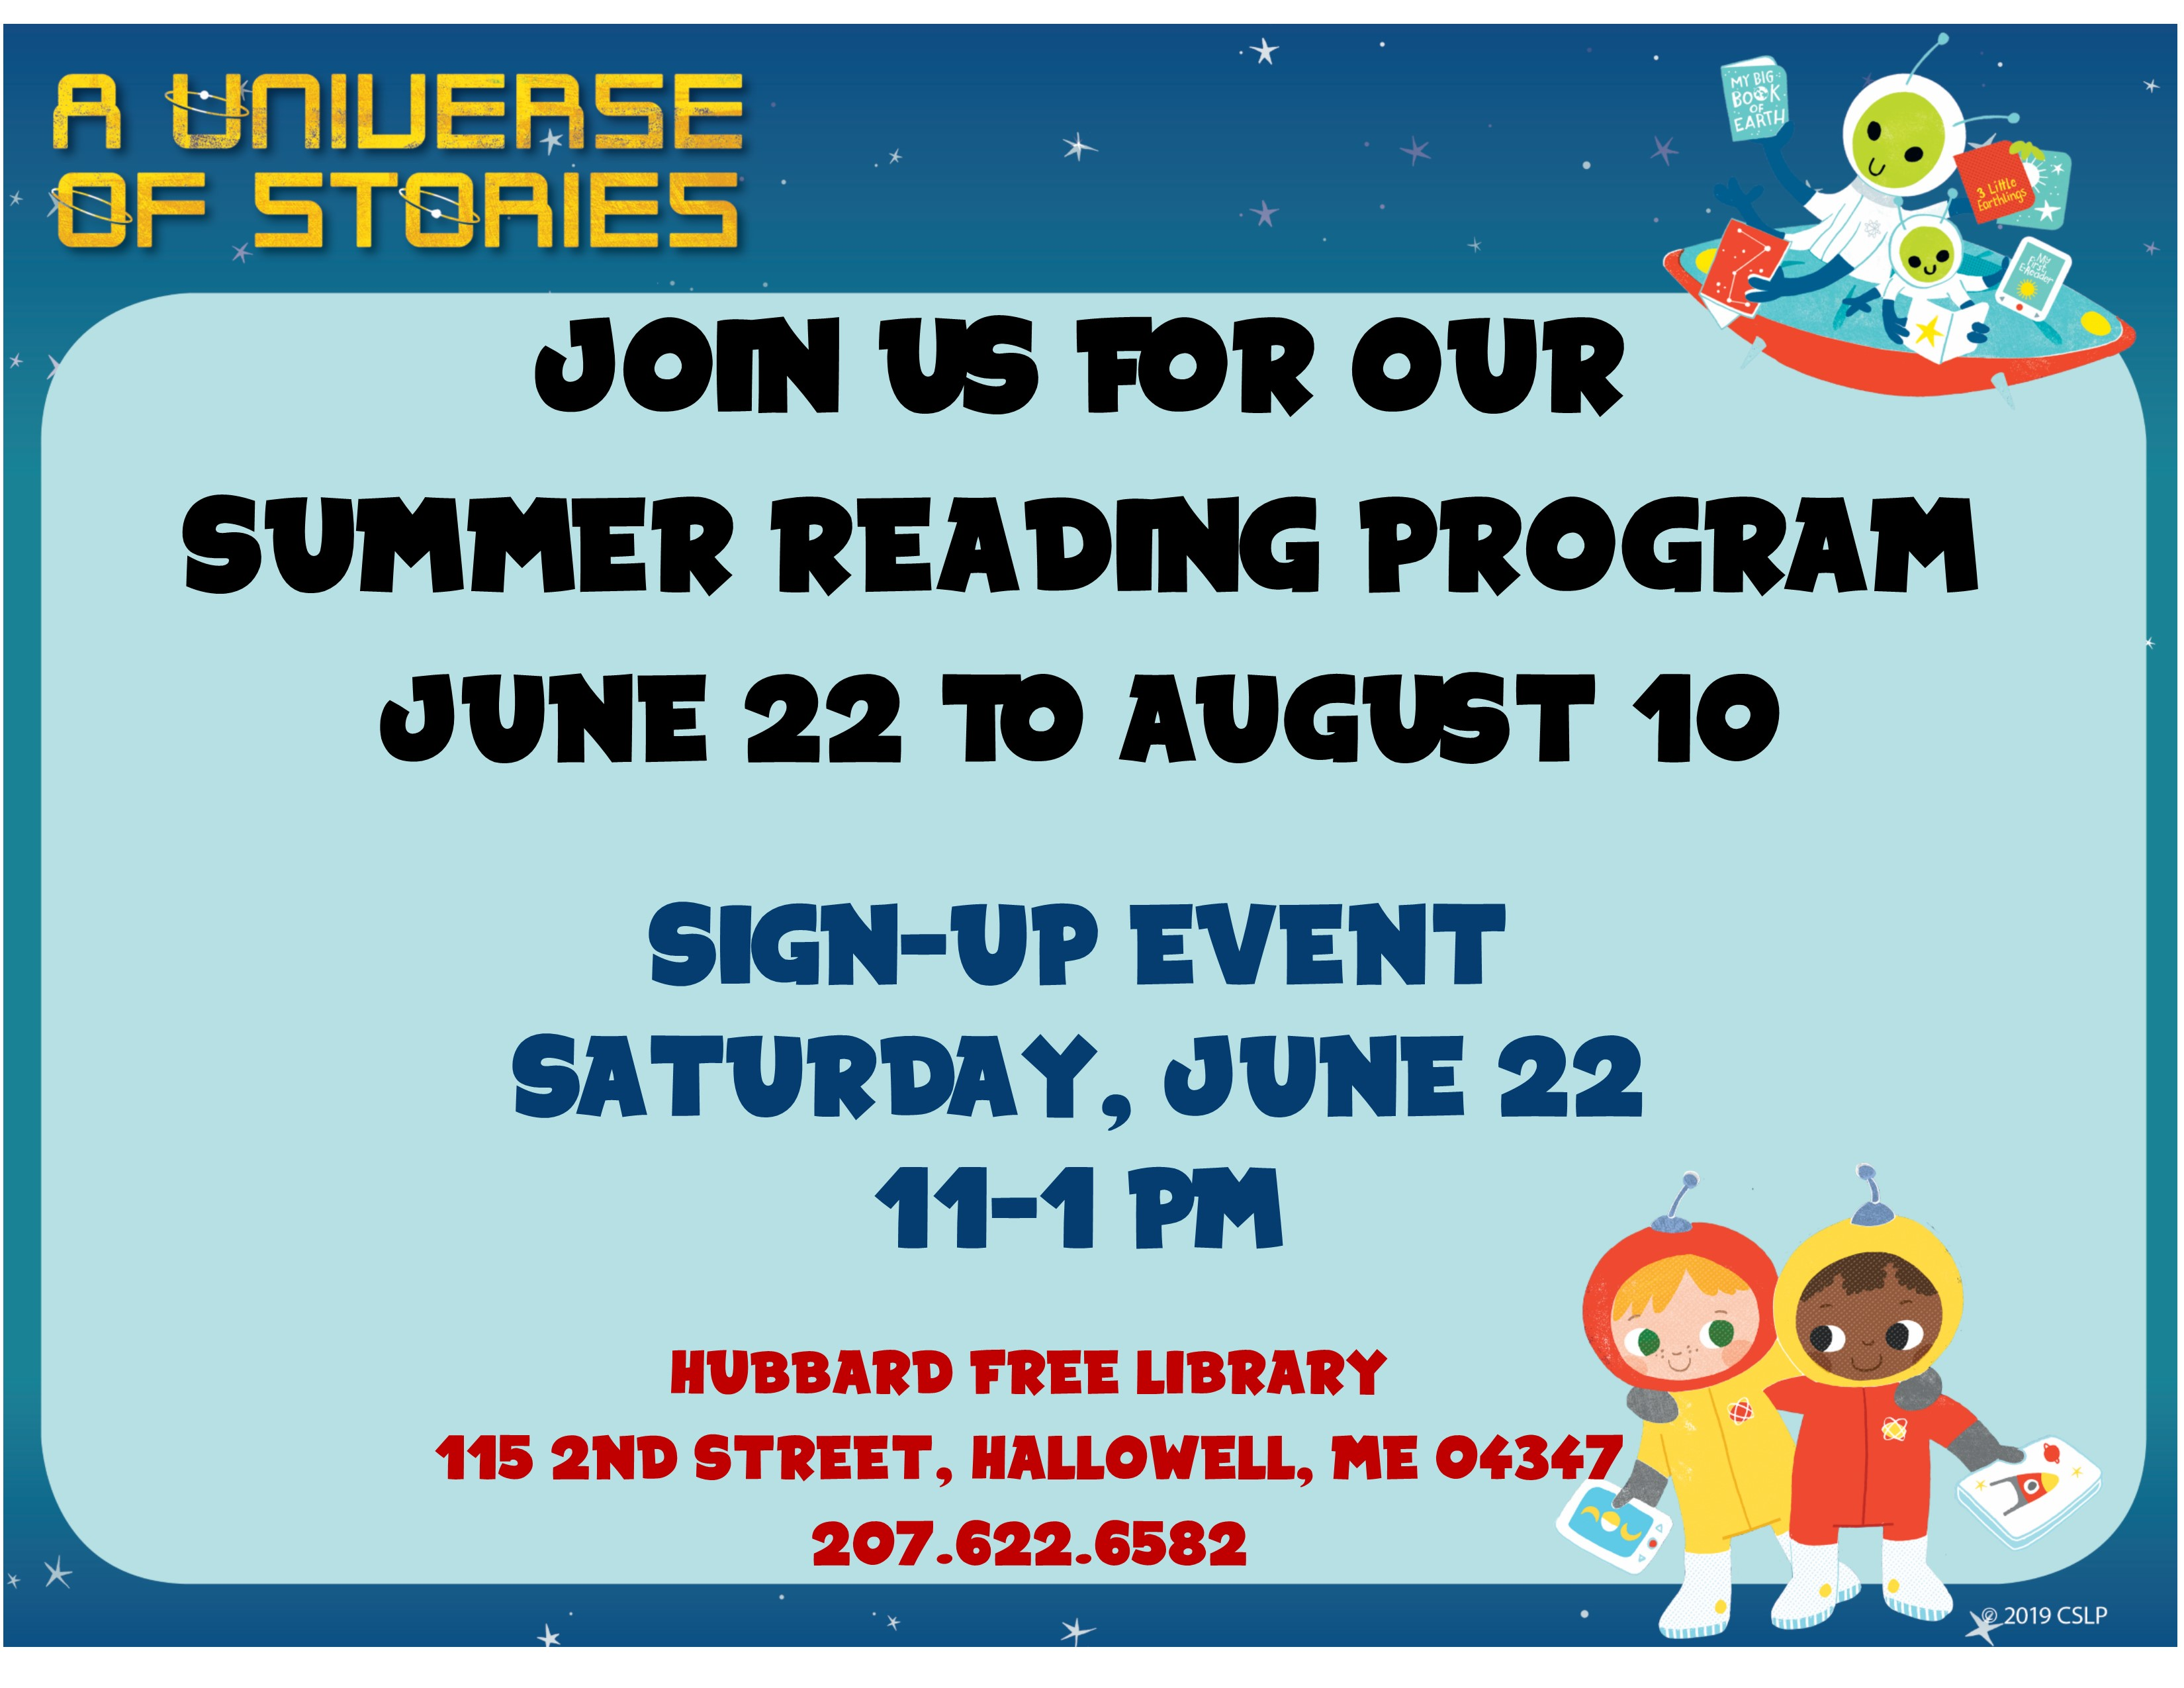 Sign-Up Event for Summer Reading Program | Hubbard Free Library